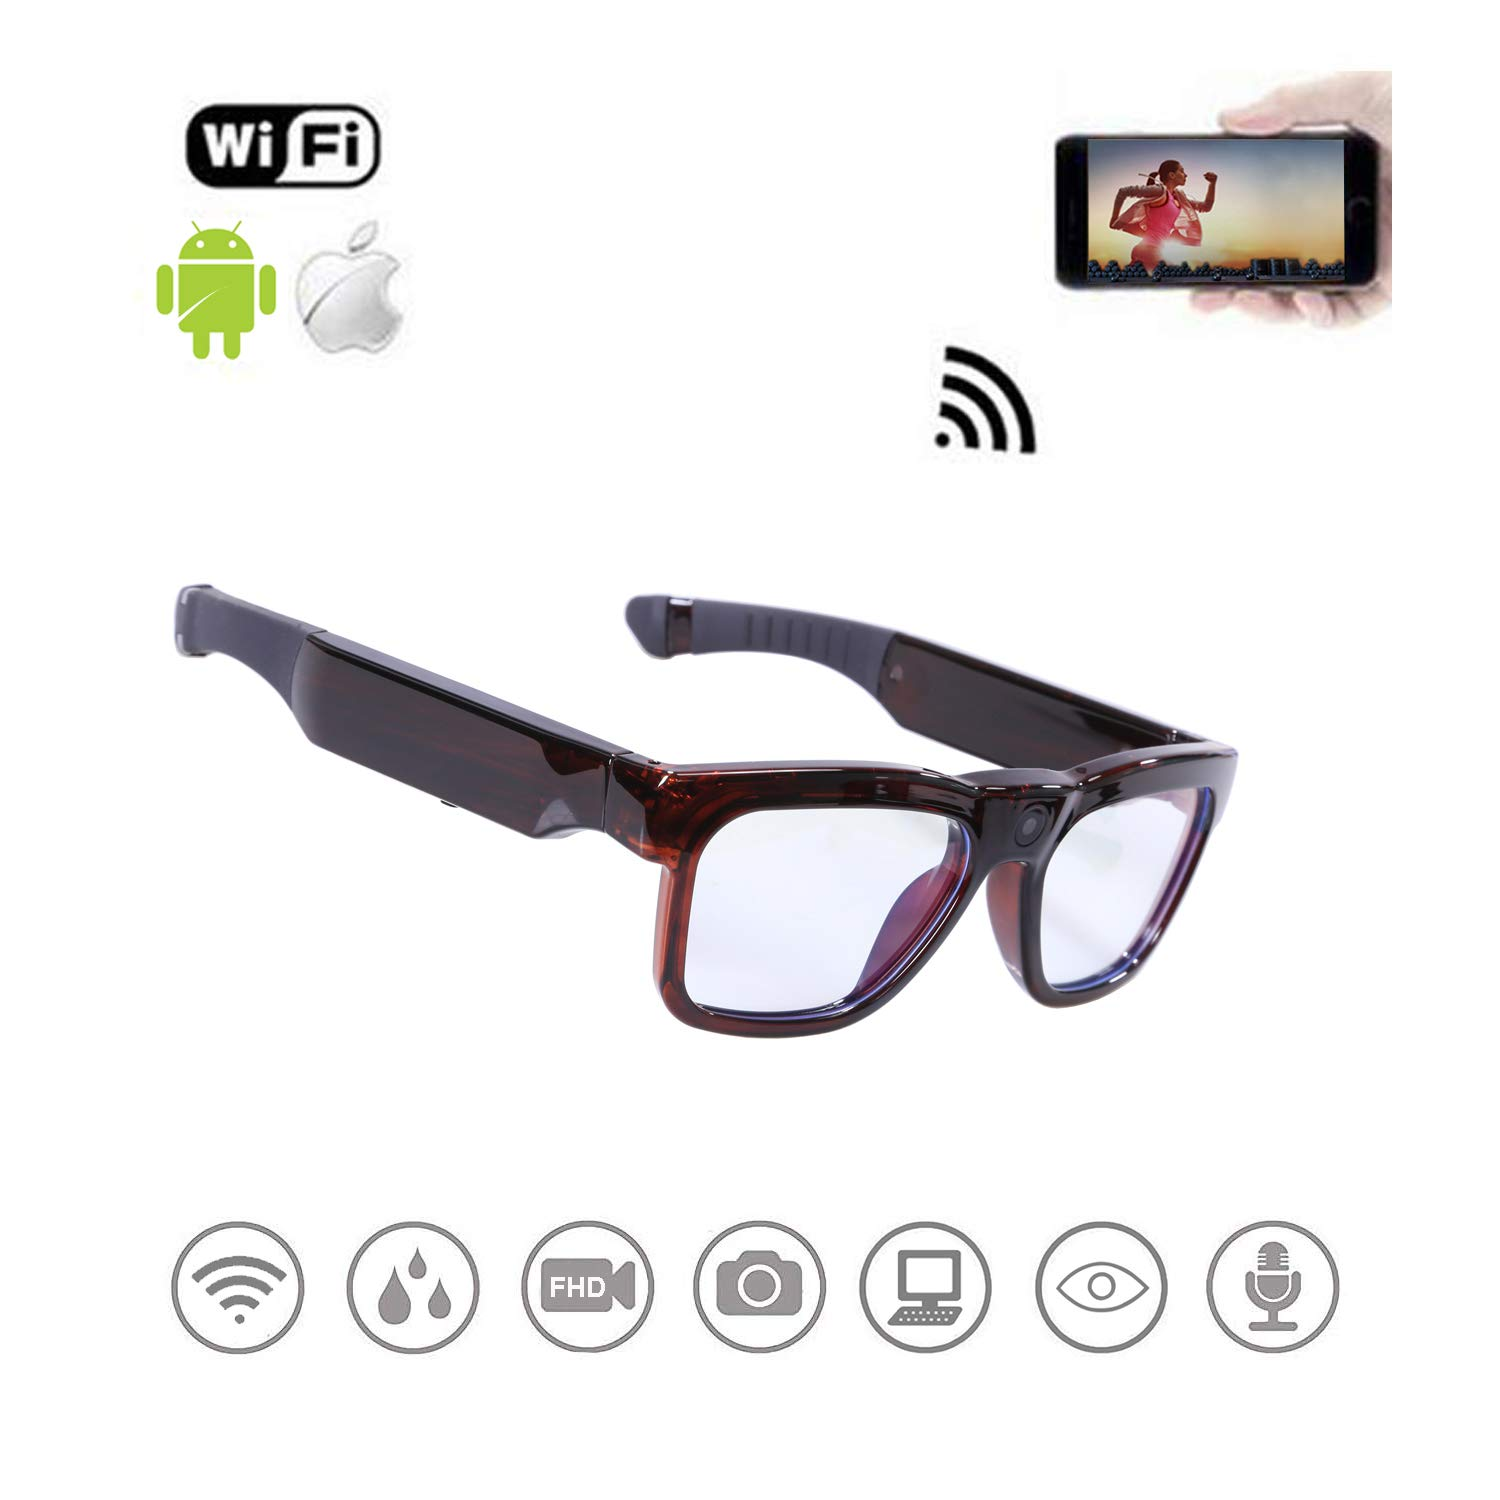 Safety Glasses,WiFi Streaming Videos & Photos from Glasses to Mobile Phone by App with Ultra Full HD Camera, Built-in 64GB Memory and Blue Light Blocking Protective Glasses for Gaming, Reading